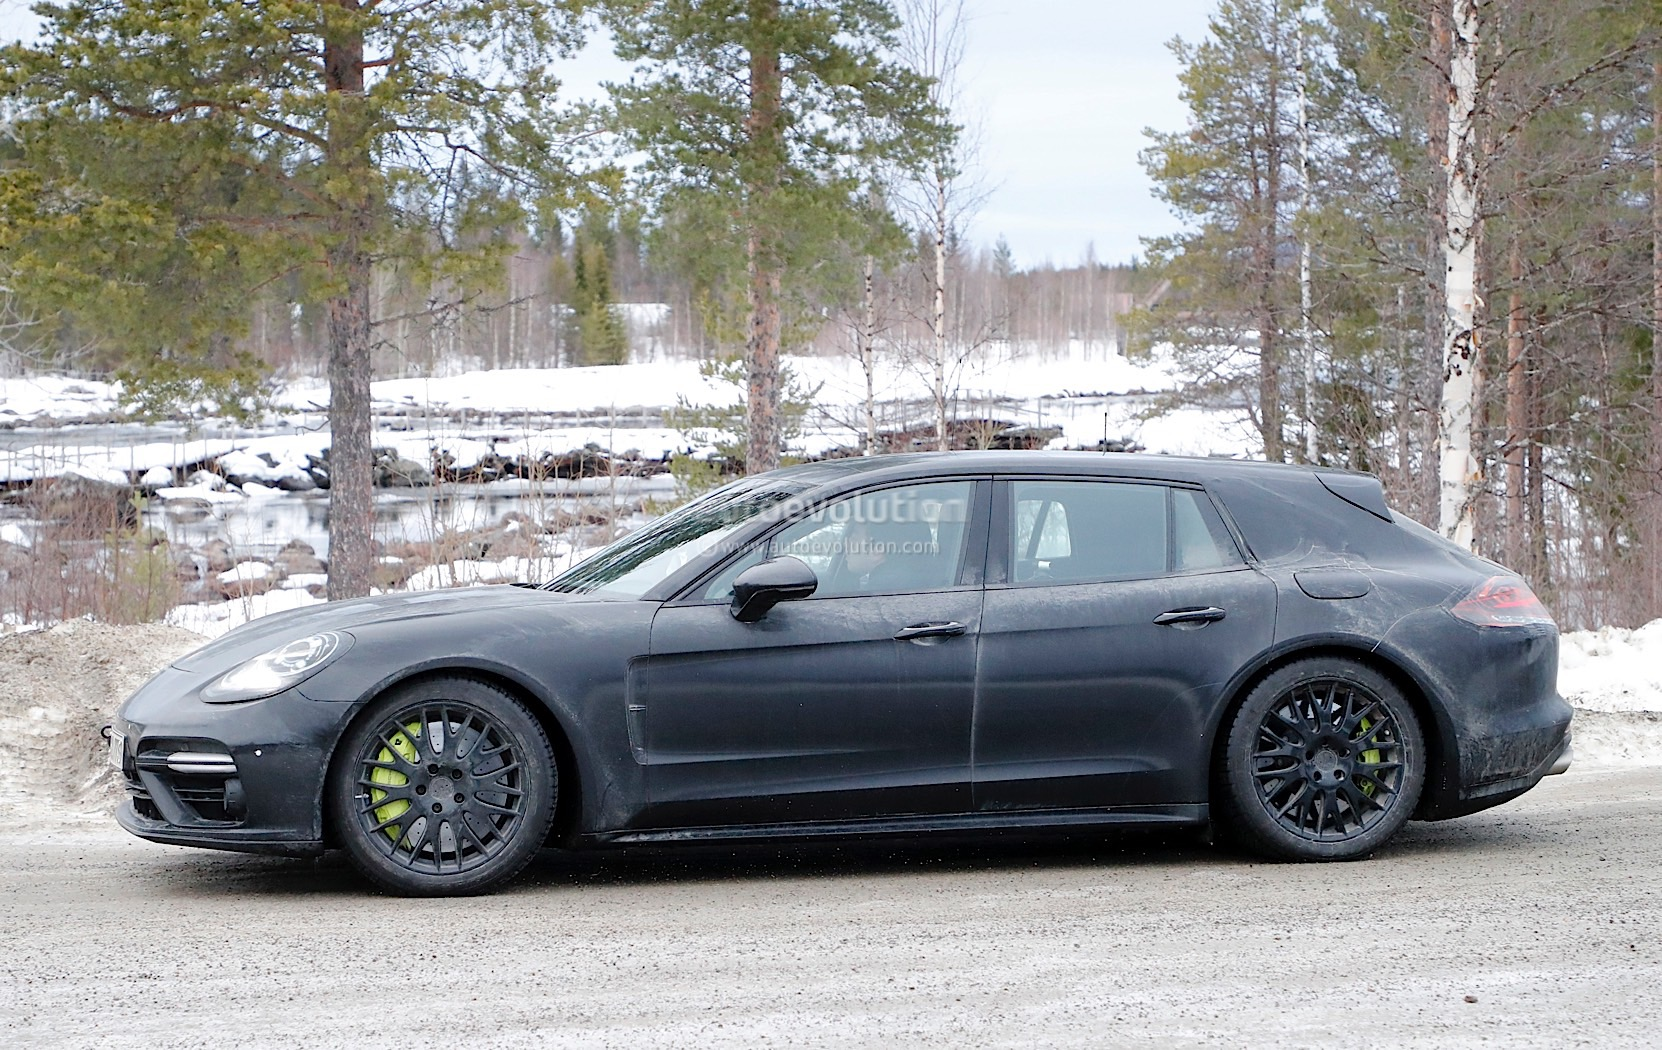 Turbo meets hybrid to create new flagship Panamera